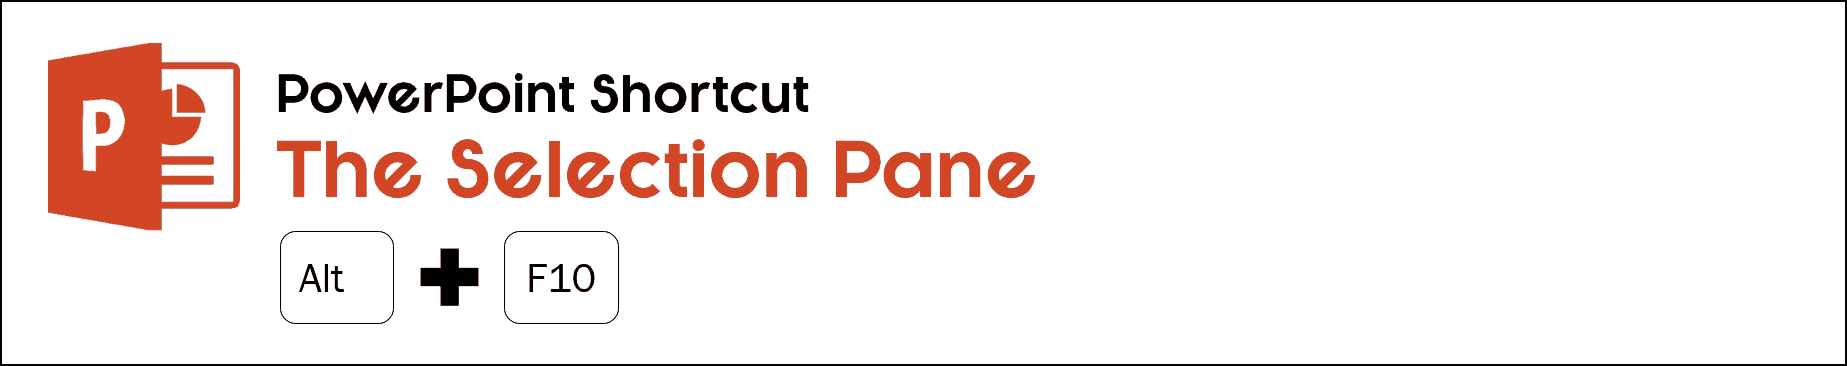 To open or close the selection pane in PowerPoint, hit Alt plus F10 on your keyboard